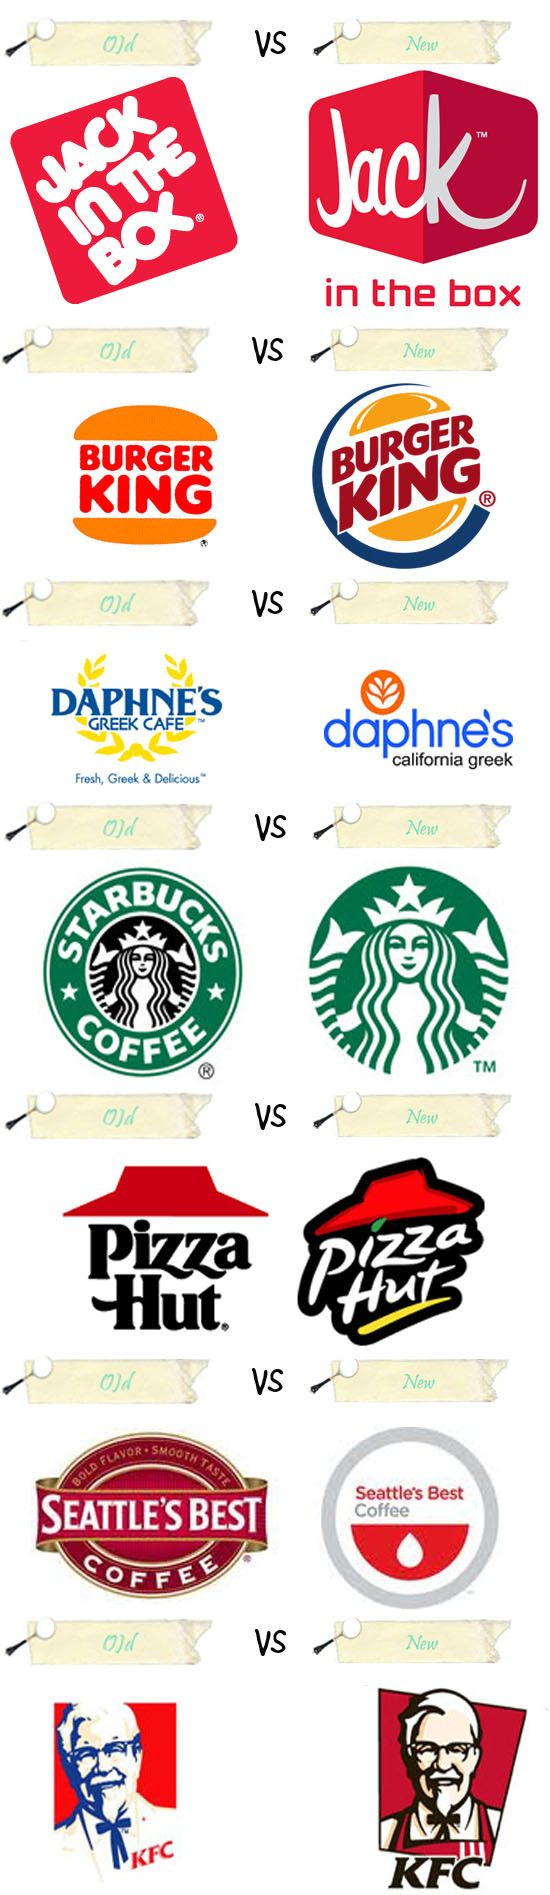 Shows the evolution between logos of famous brands. Both the old and new still are effective in their own right and are still recognizable even today.